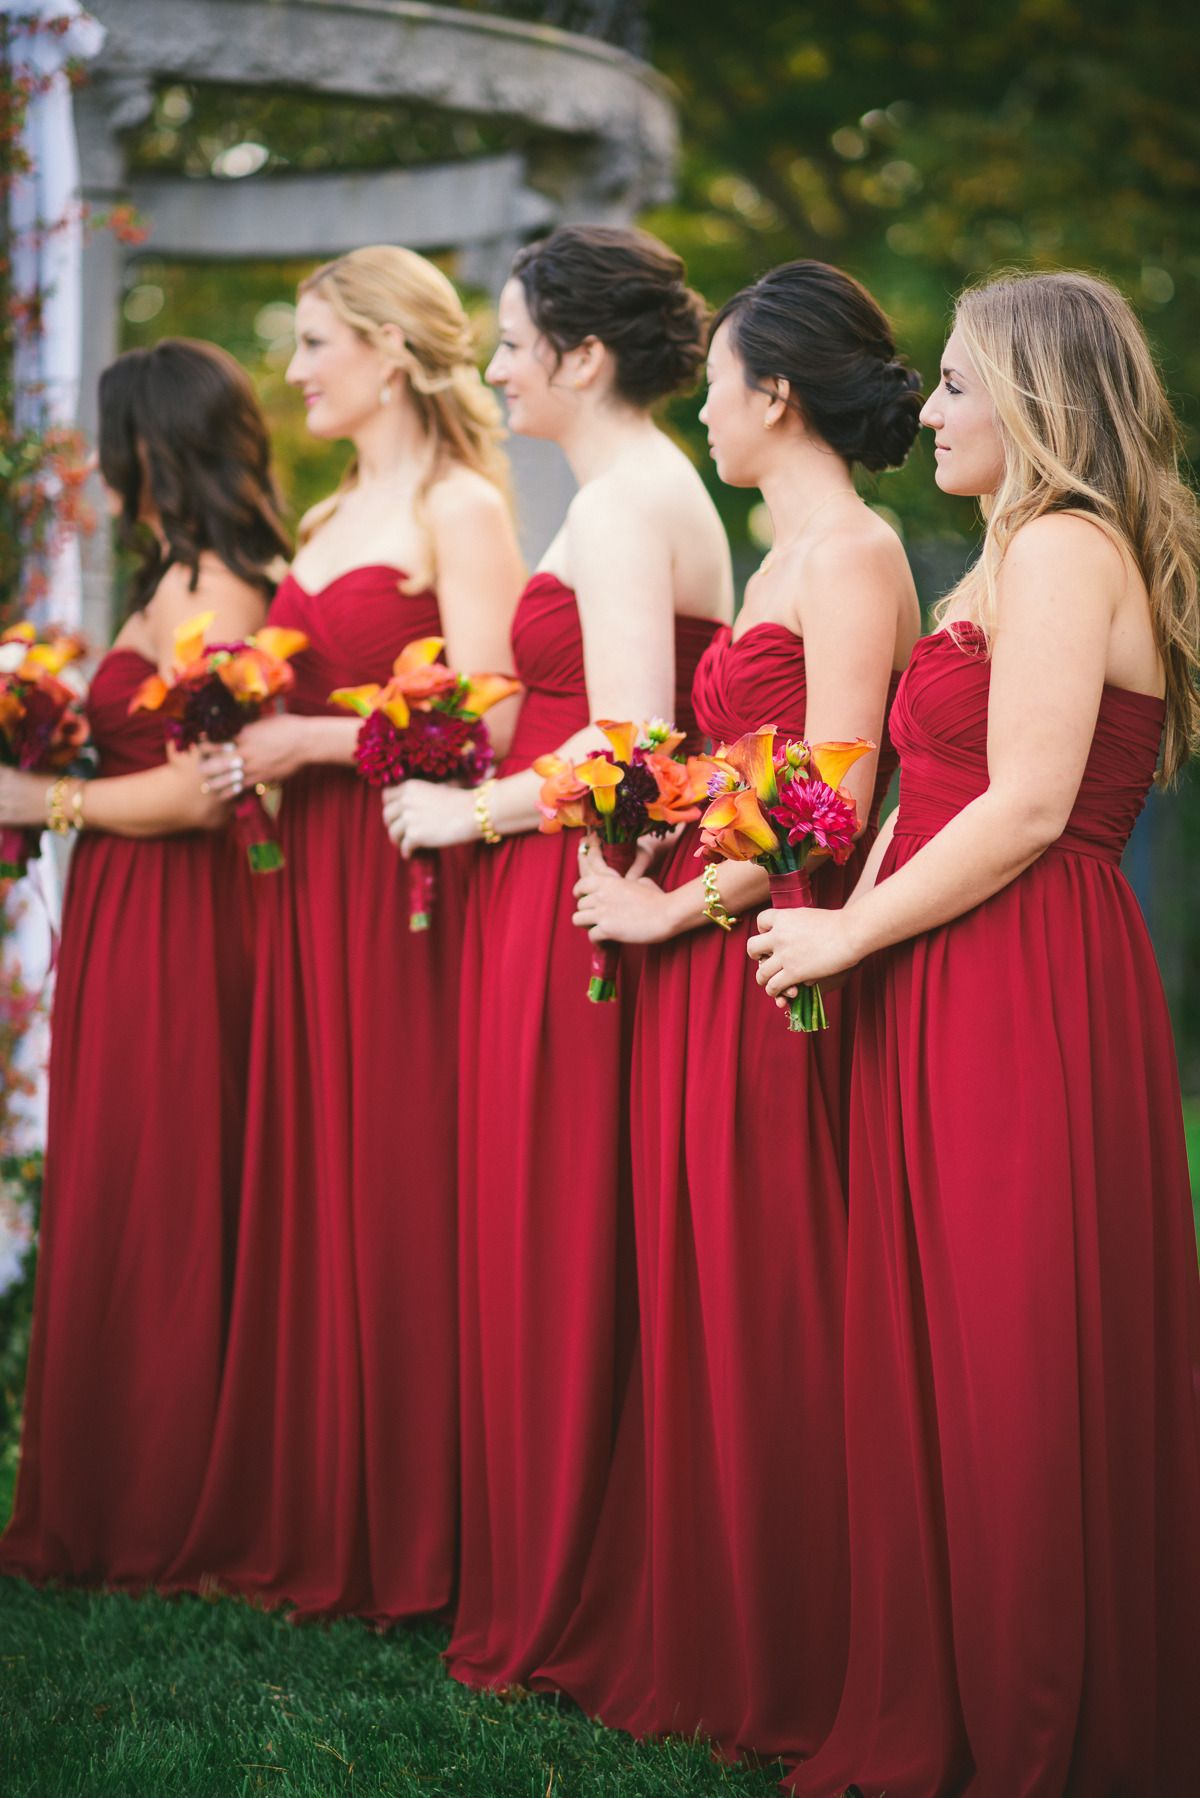 Stunning wine themed fall wedding gina cristine photography stunning wine themed fall wedding gina cristine photography pinterest wedding wine and weddings ombrellifo Gallery